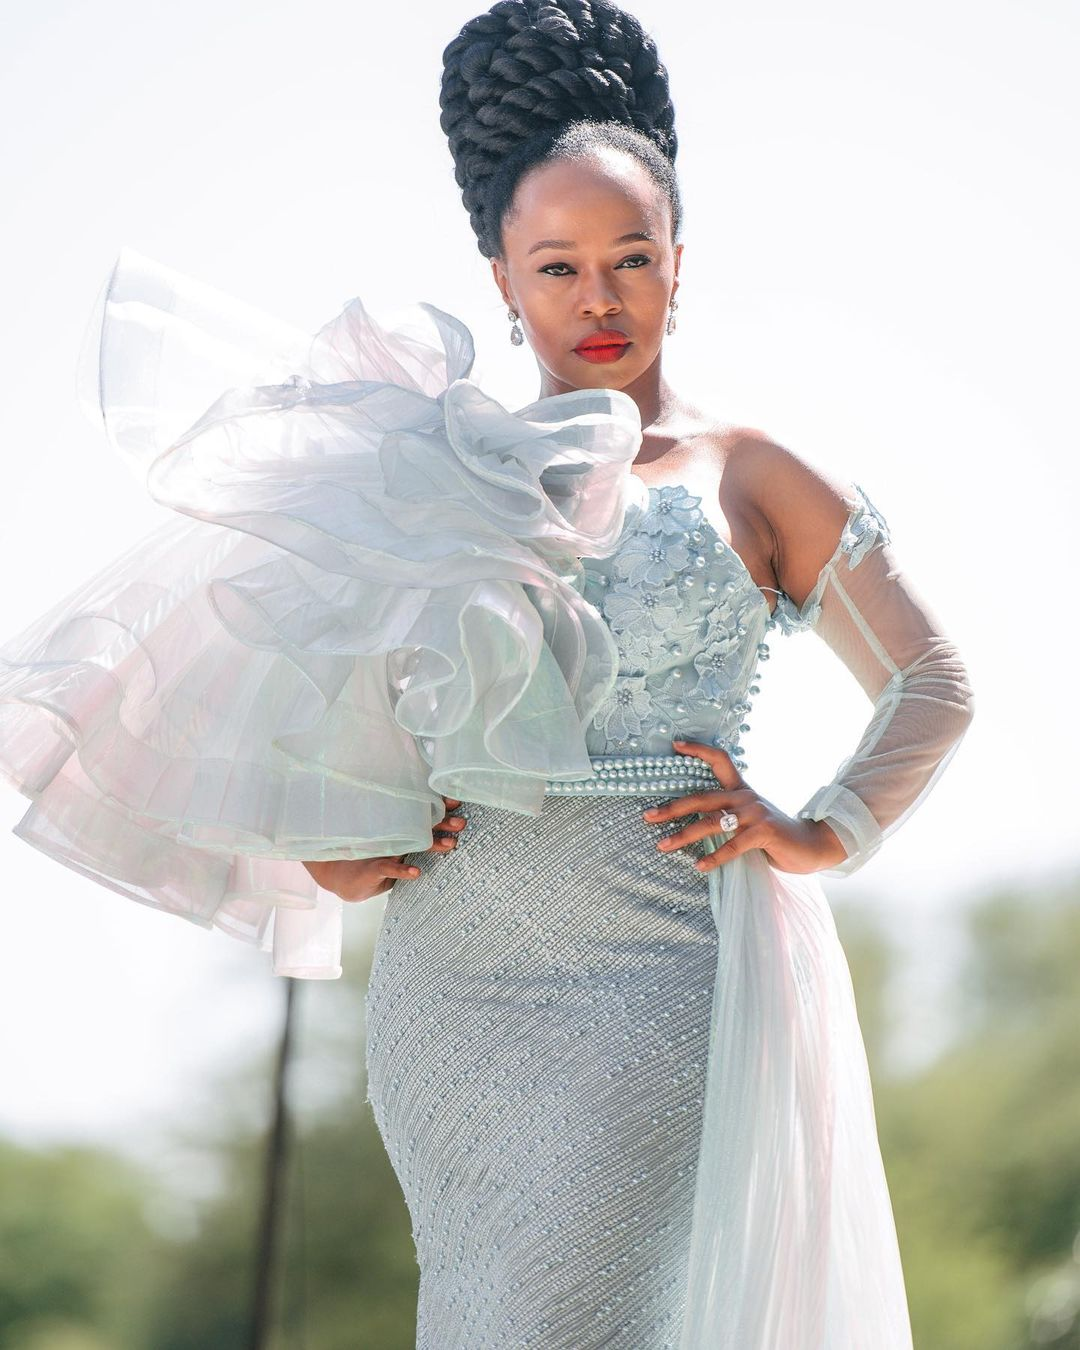 Sindi Dlathu Biography: Age, Family, Career, Muvhango, The River, Television Roles, Controversy